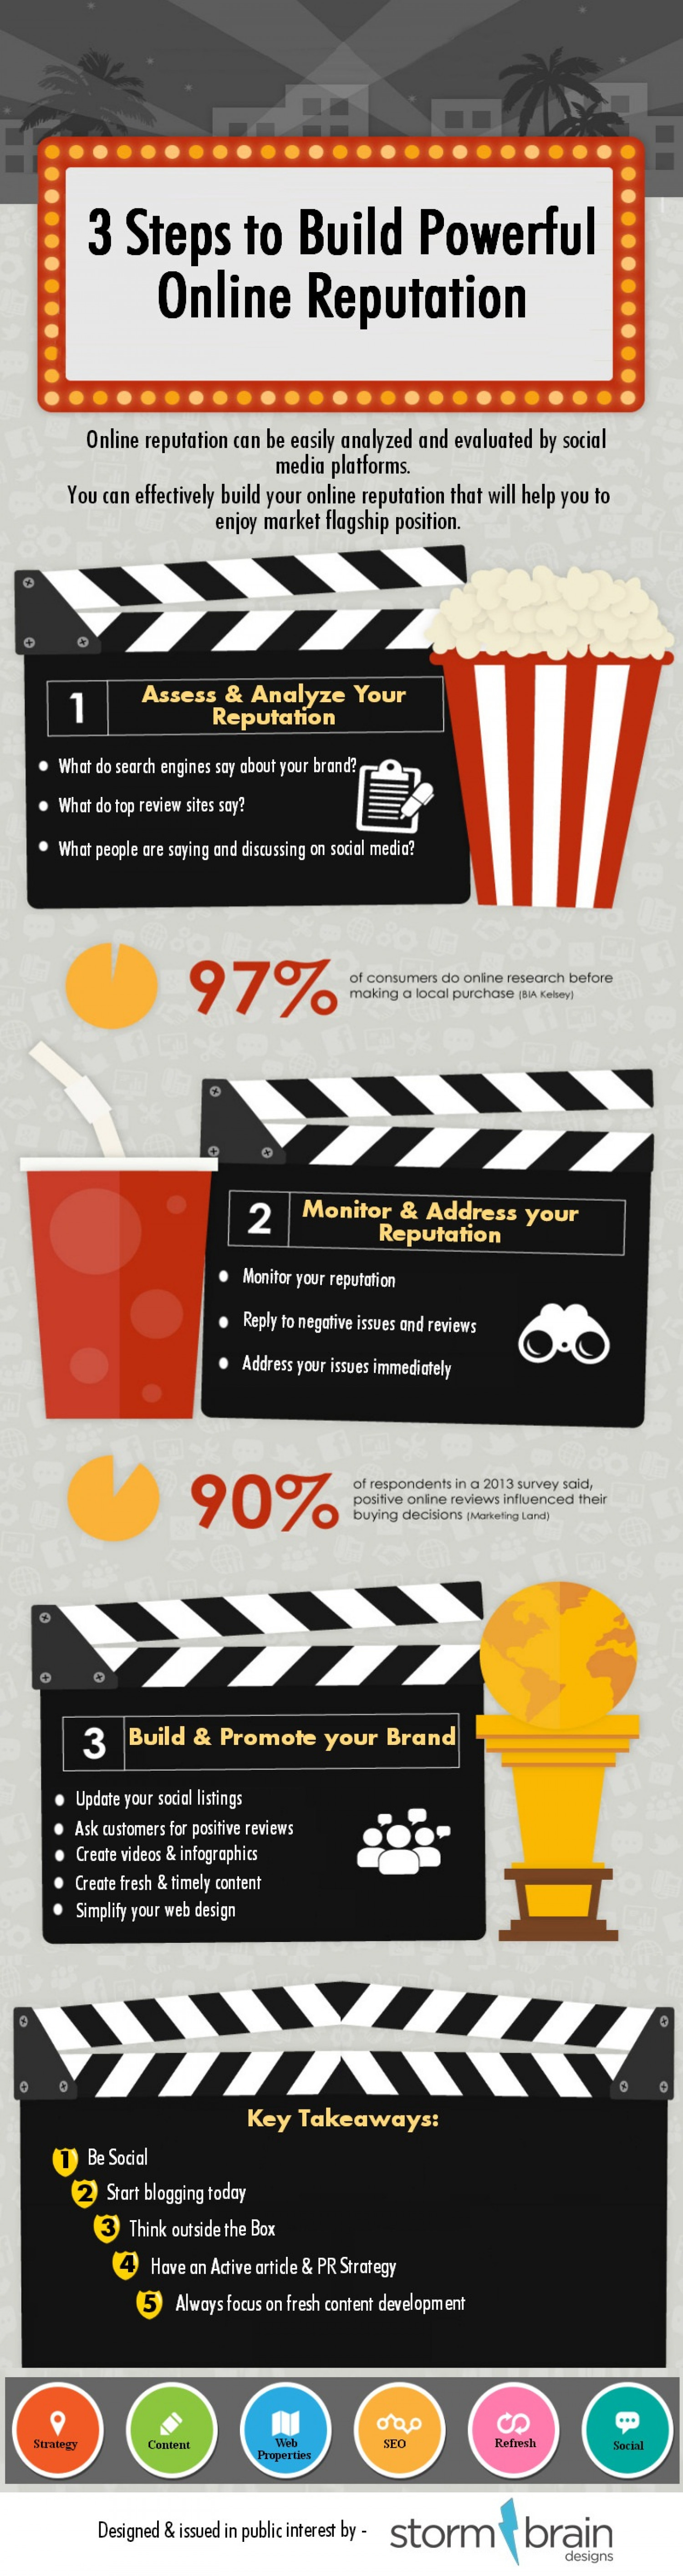 3 Steps to Build Powerful Online Reputation Infographic